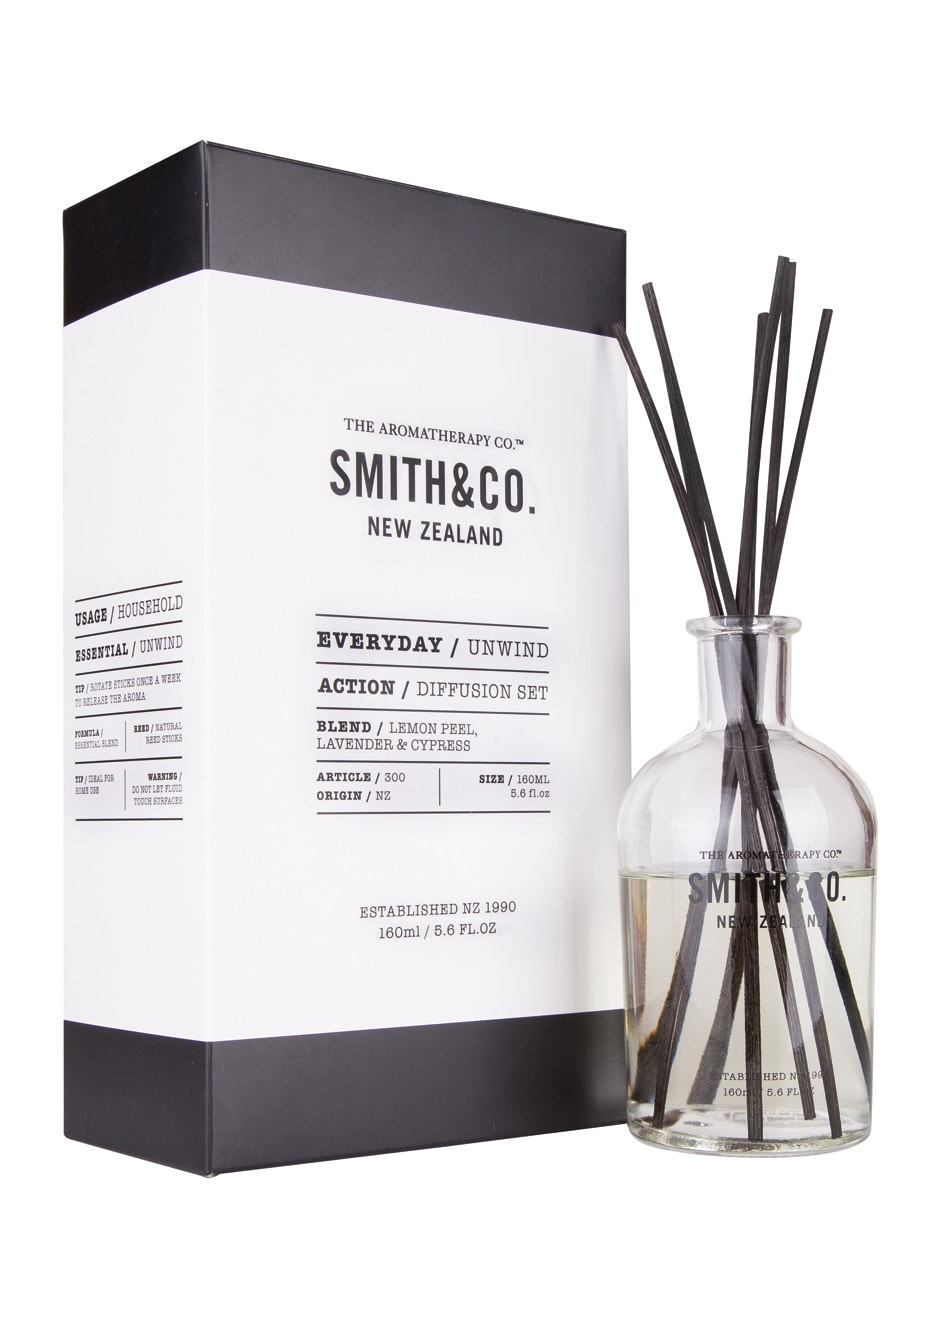 The Aromatherapy Co.  Smith & Co. Diffusion set - Unwind